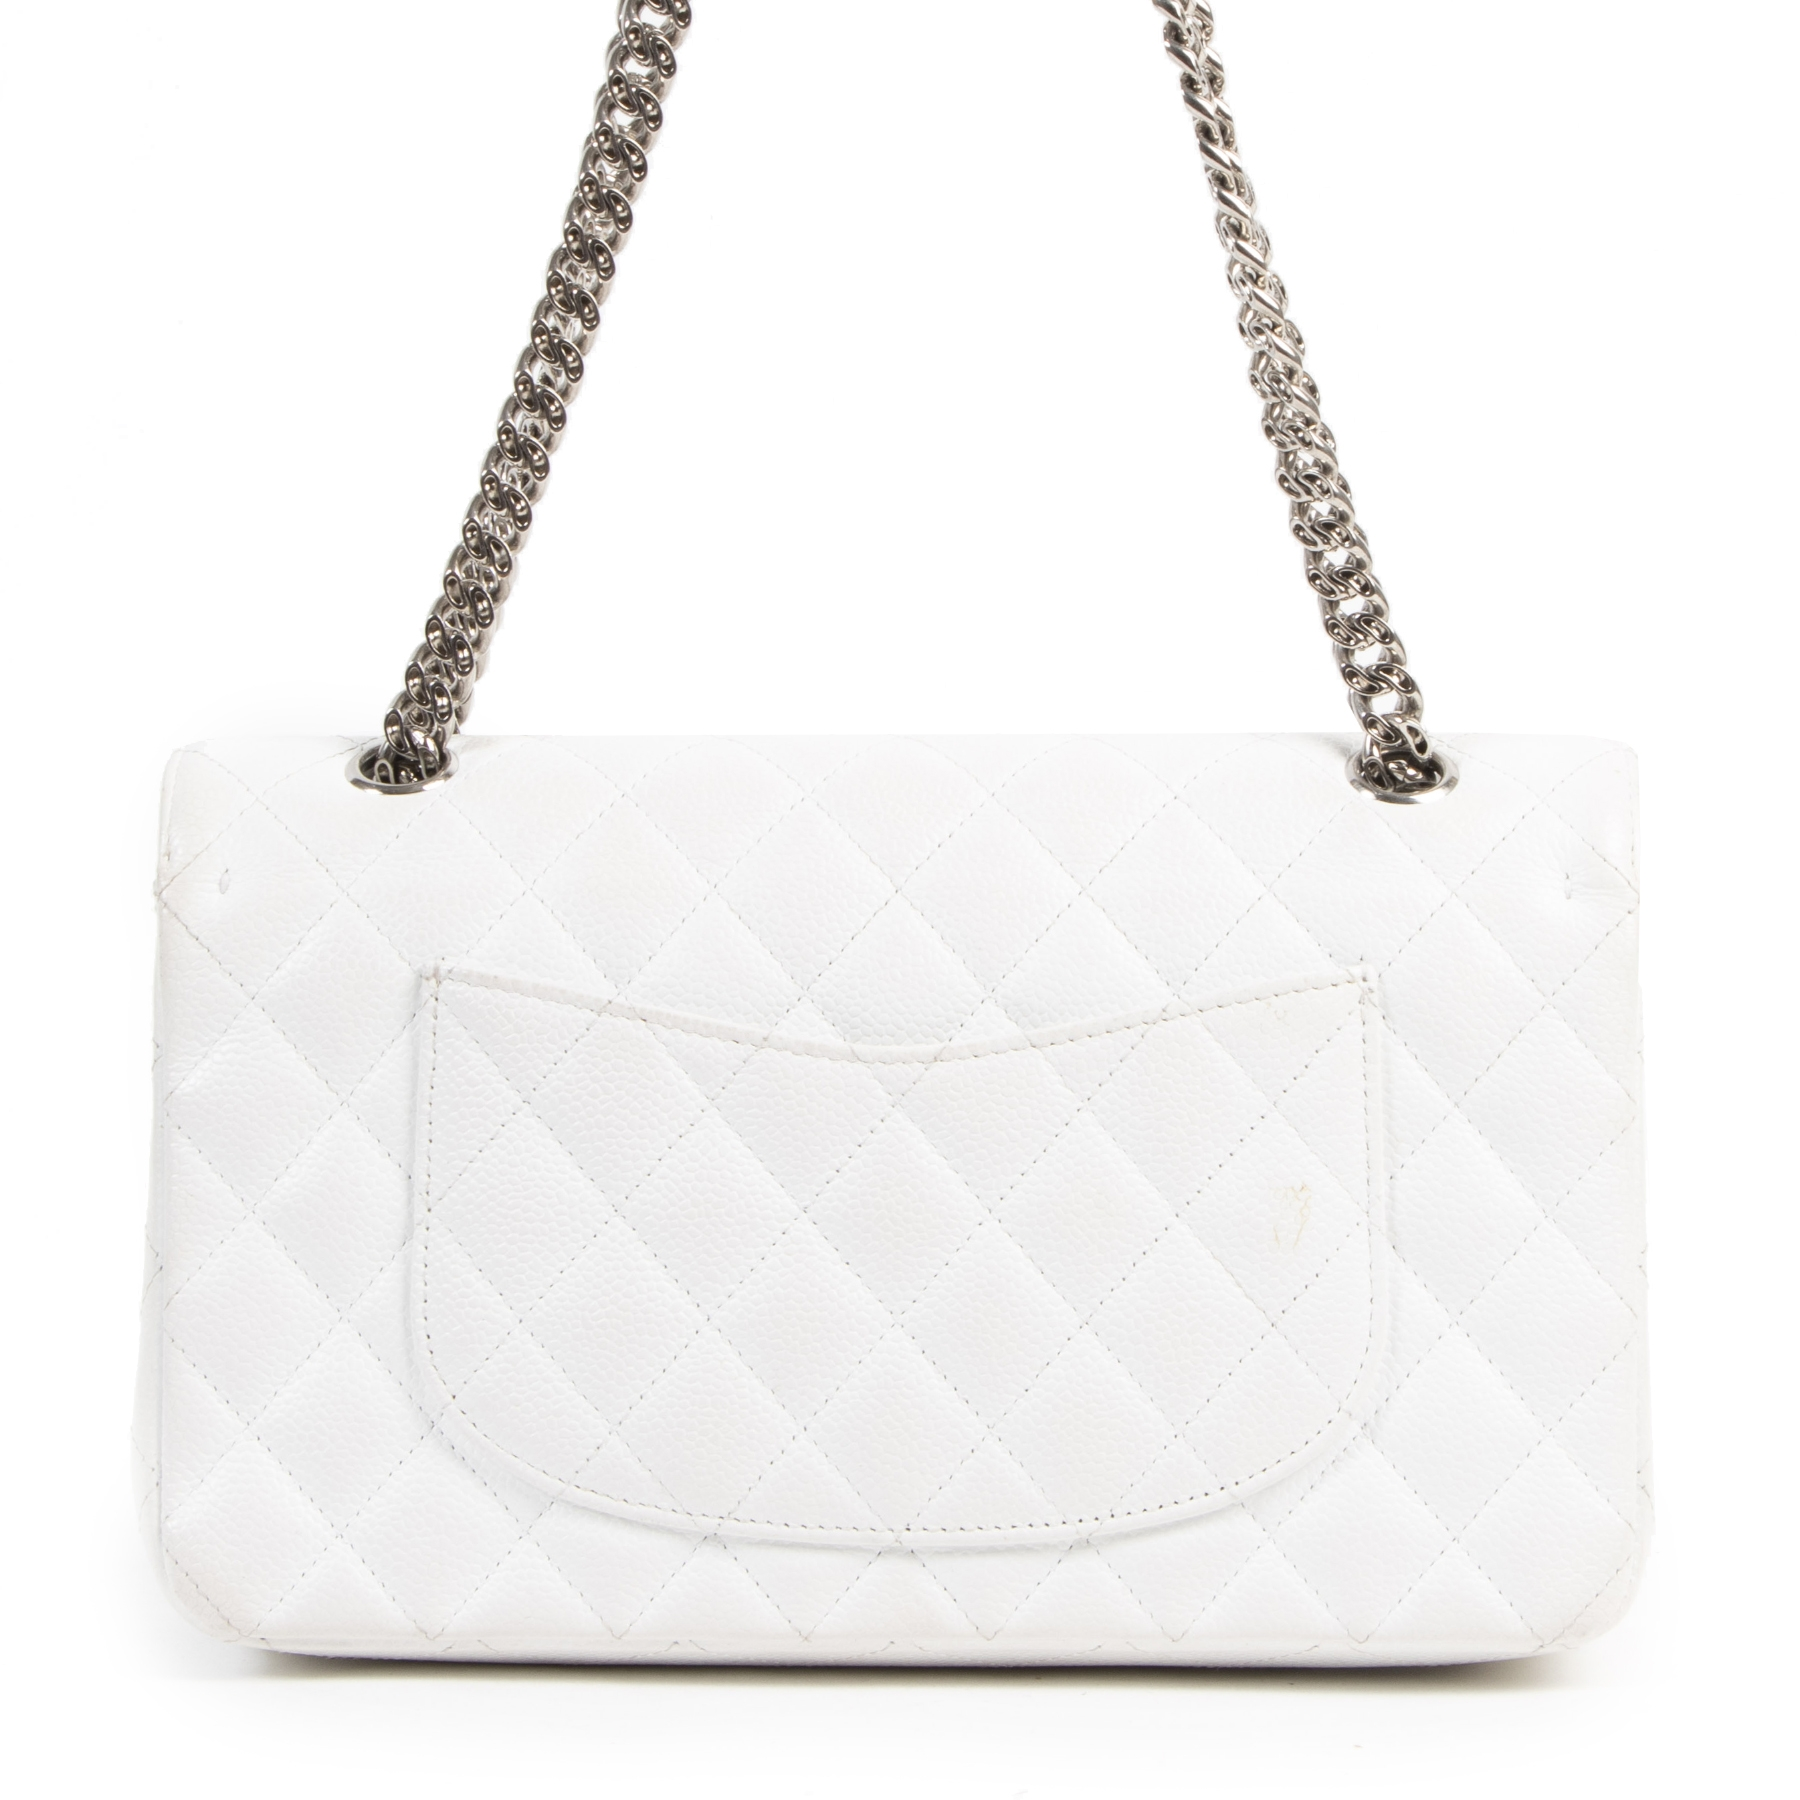 shop safe online Chanel White Caviar Medium Classic Double Flap Bag